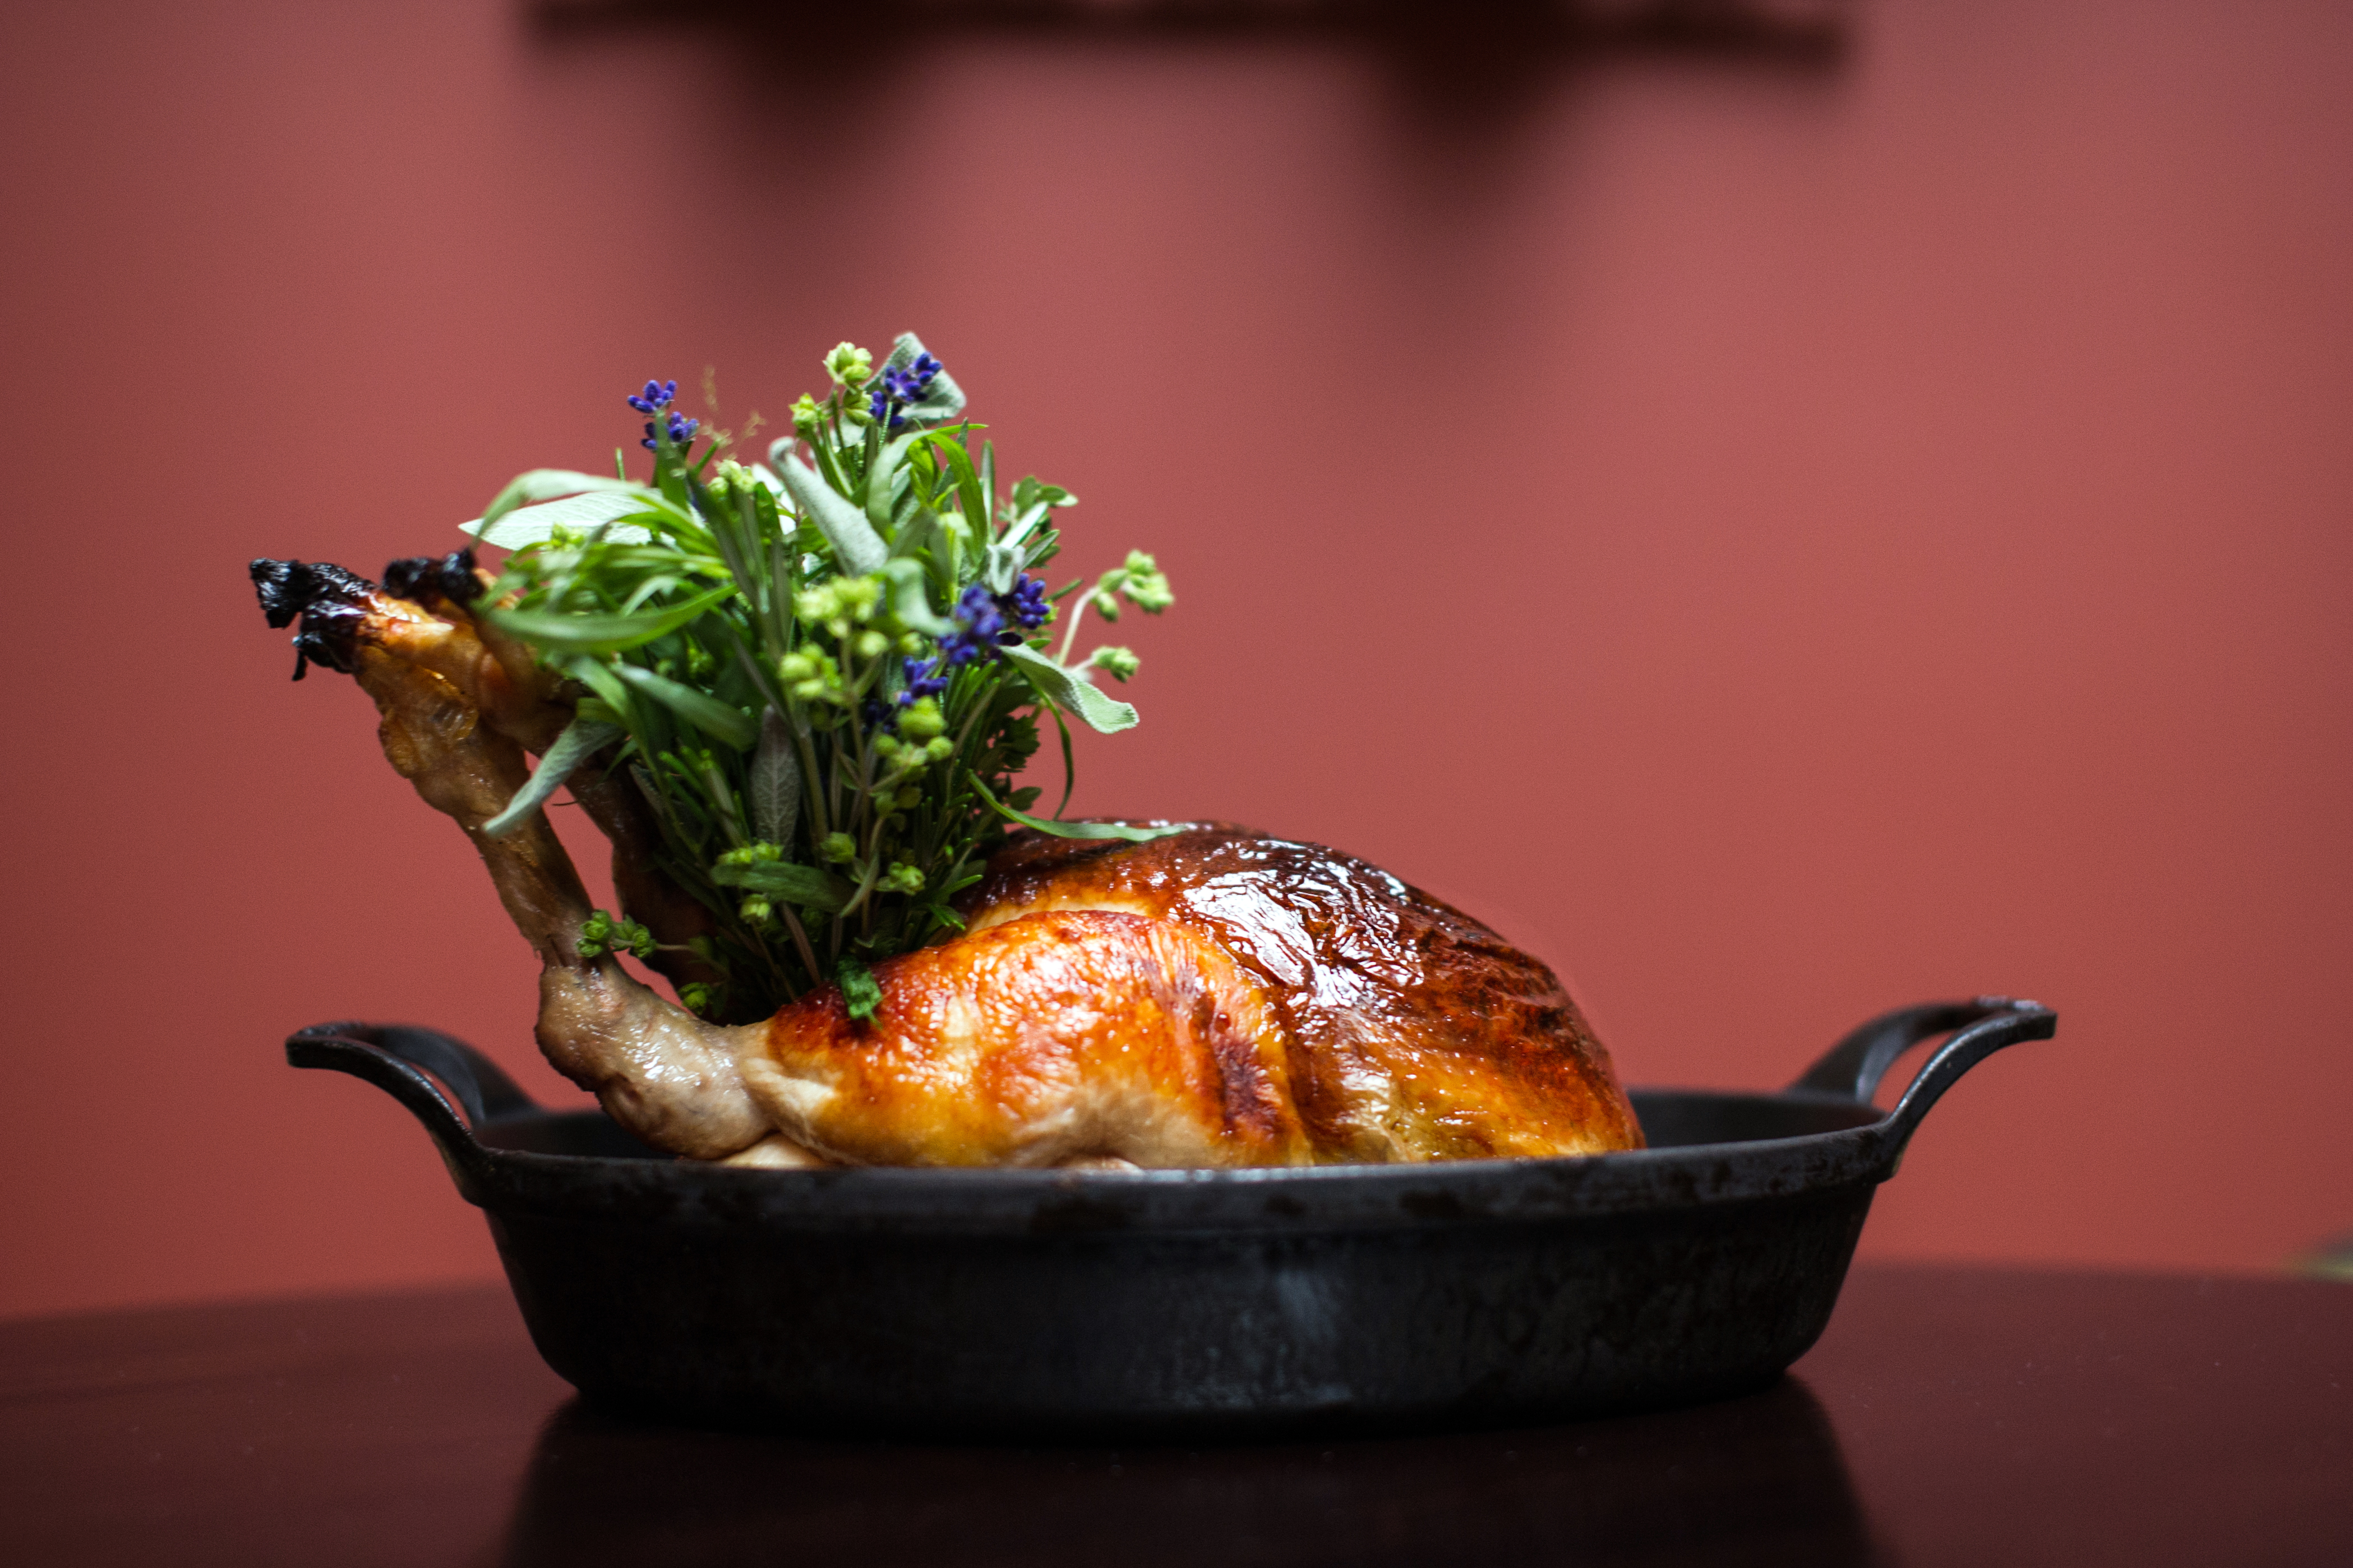 Roast chicken in a black dish on a red background